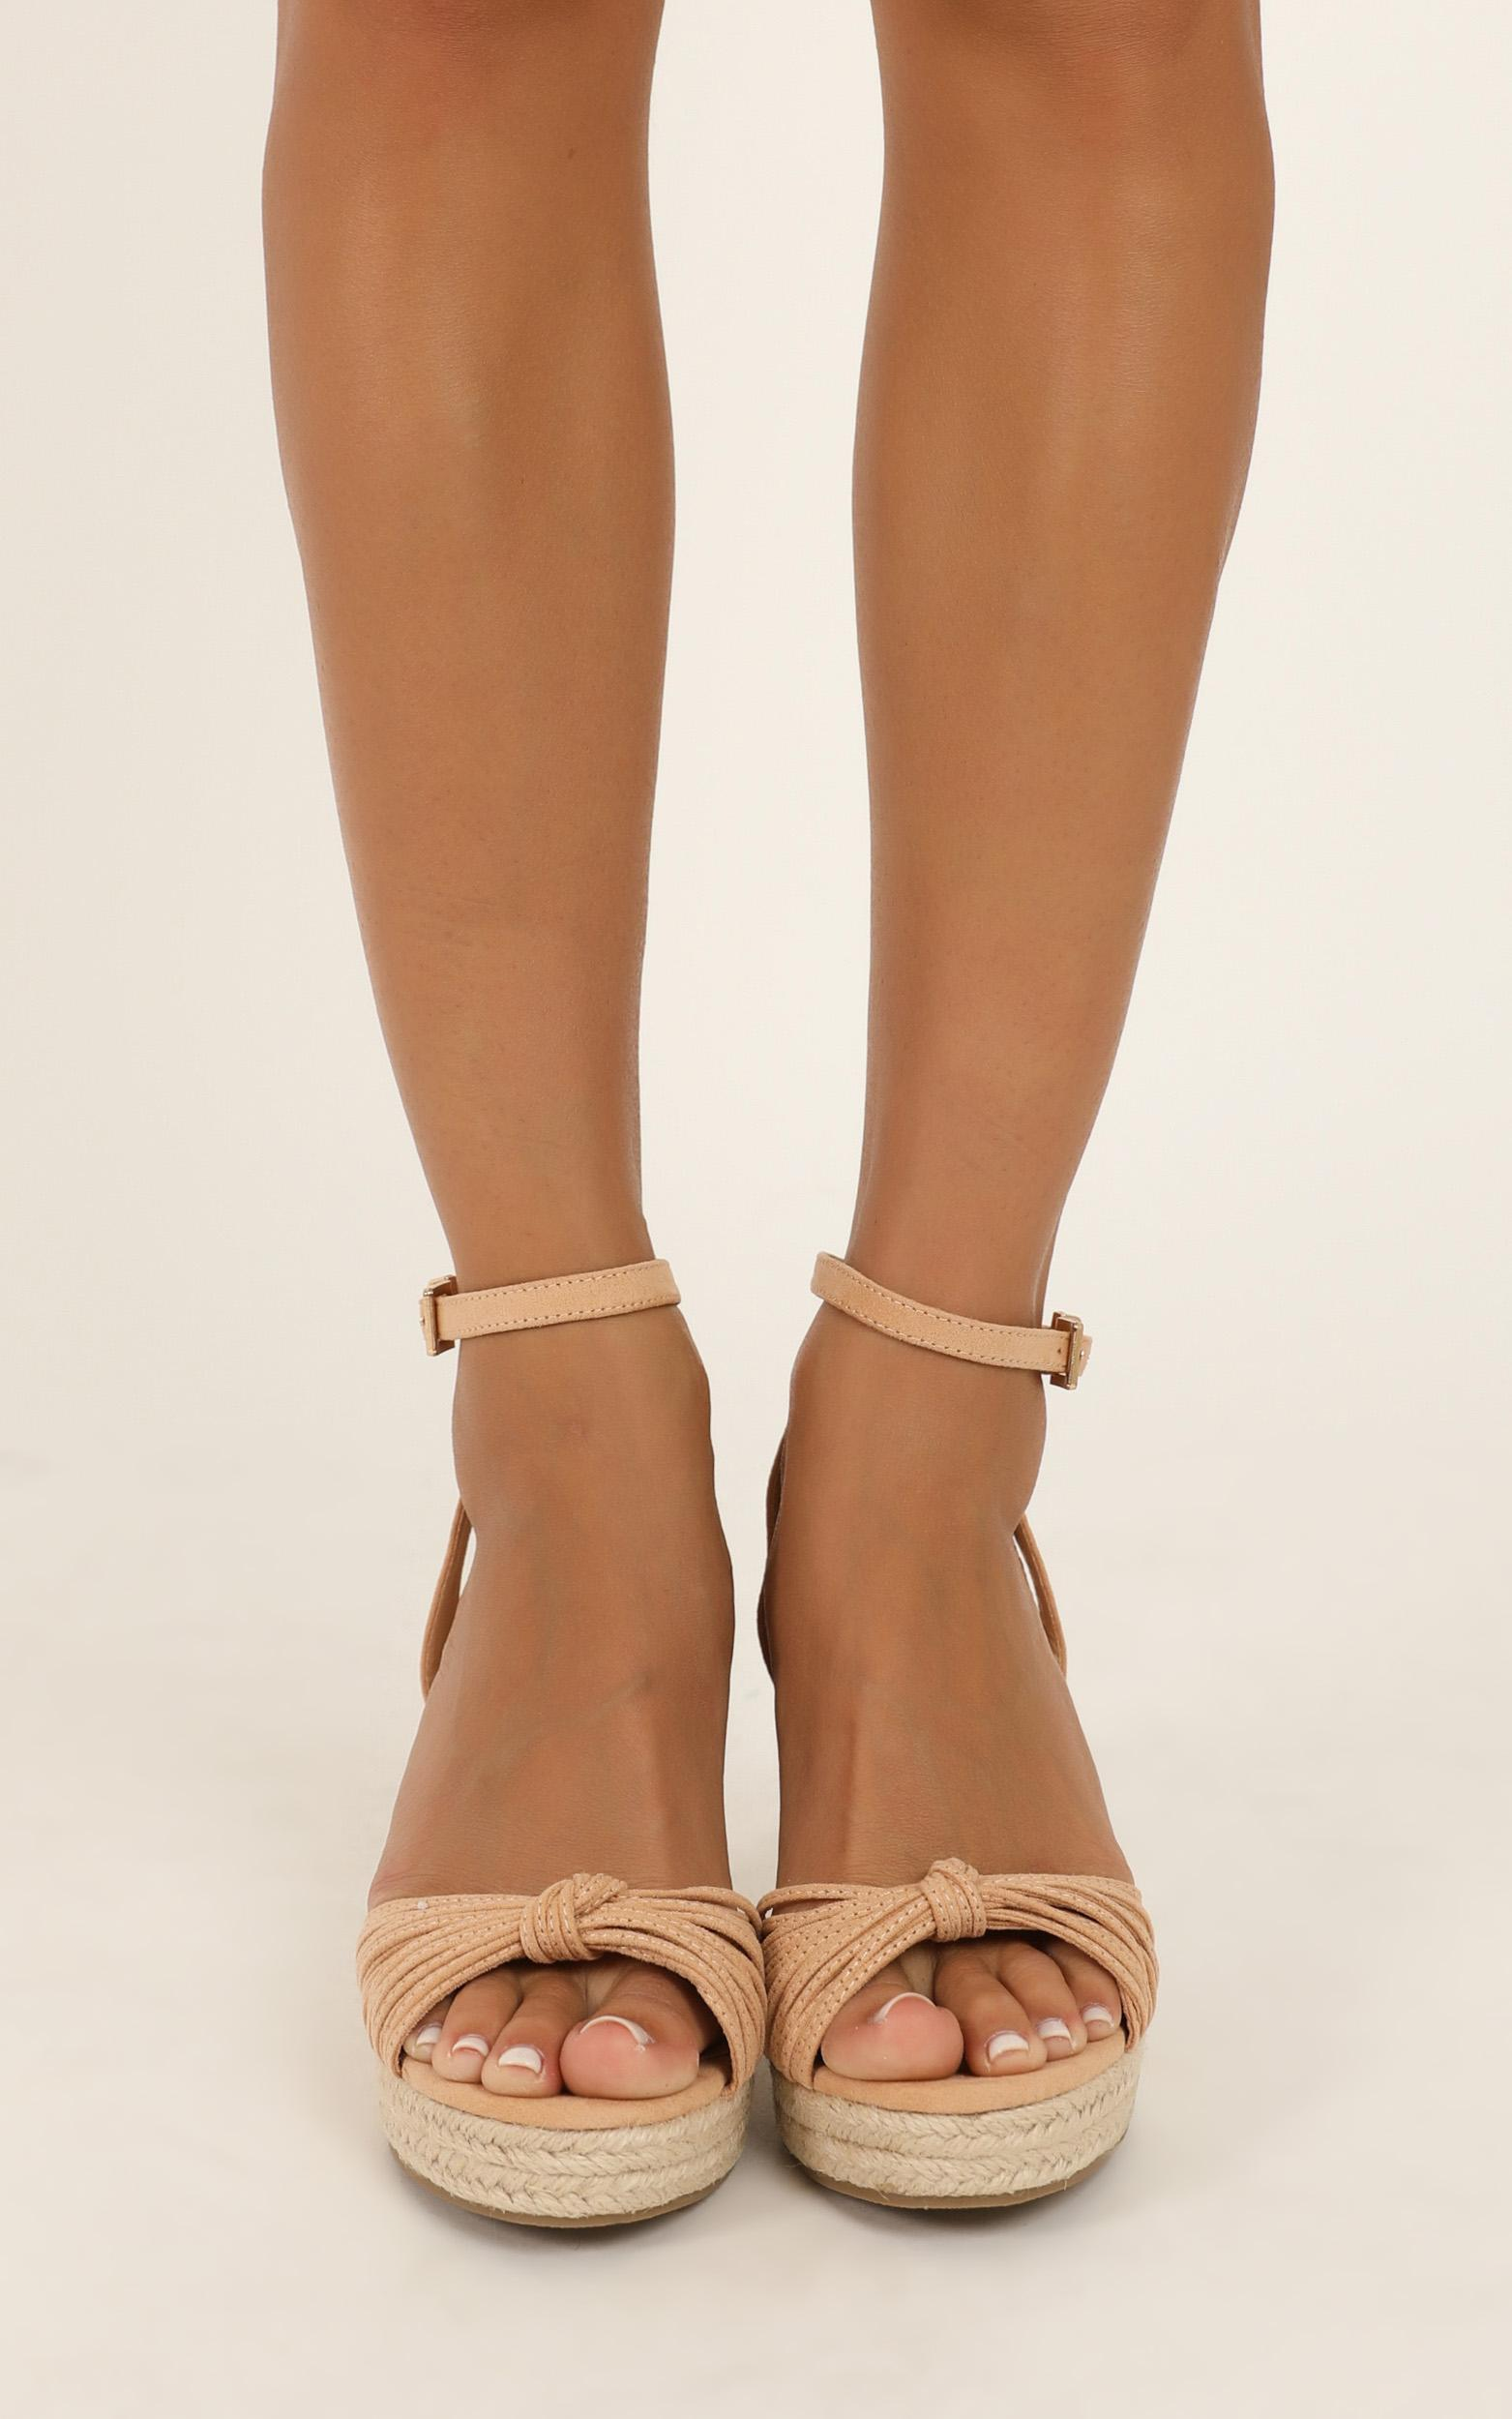 Verali - Amy wedges in nude micro - 10, Beige, hi-res image number null